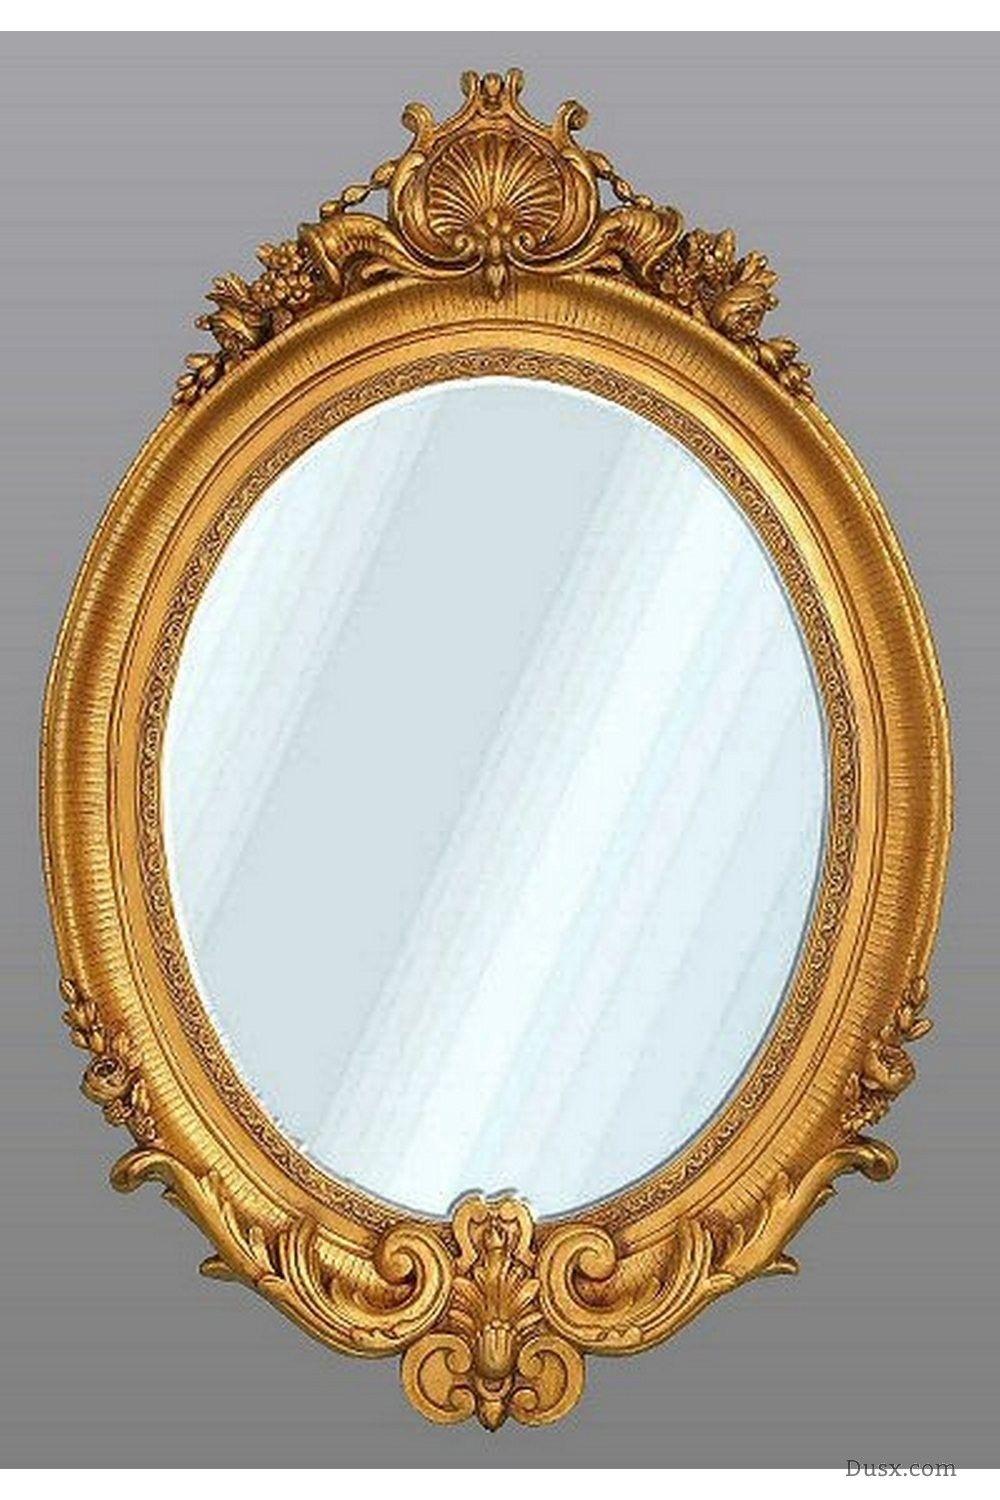 Oval Mirror Wood Frame Enable Cookies Dusx French Mirrors Chandeliers Furniture